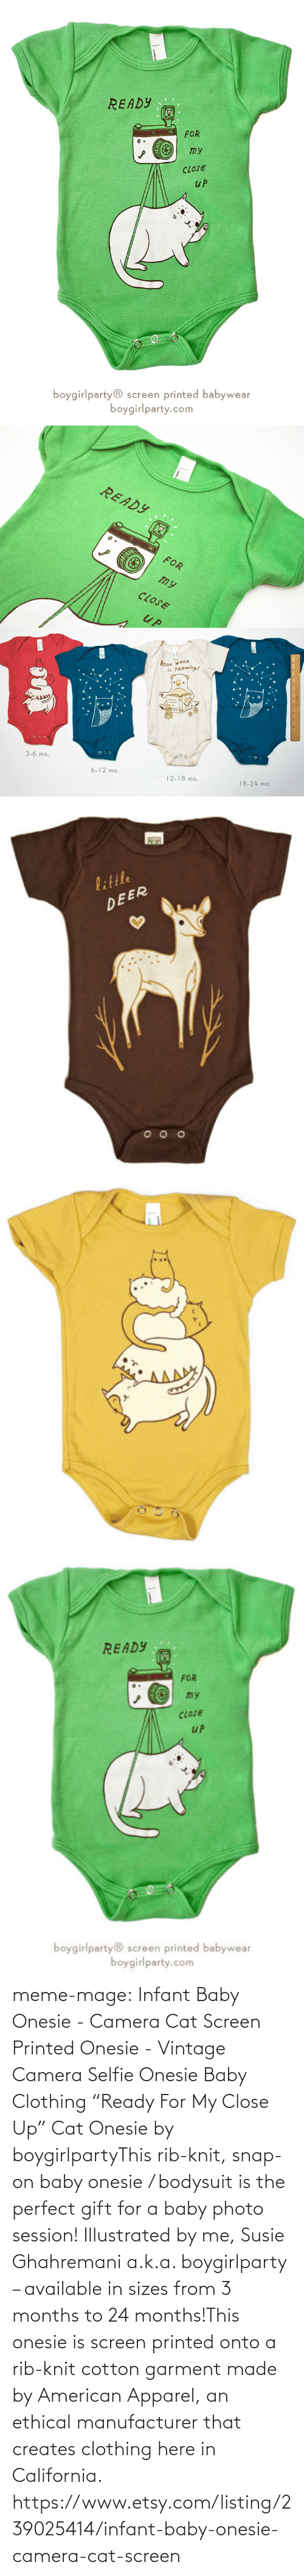 """American Apparel: READY  FOR  ту  CLOSE  иP  boygirlparty®  printed babywear  screen  boygirlparty.com   READY  FOR  my  UP   Book WORM  TRAINing!  in  3-6 mo.  6-12 mo.  12-18 mo.  18-24 mo.   little  DEER  READY  FOR  my  CLOSE  uP  boygirlparty® screen printed babywear  boygirlparty.com meme-mage:    Infant Baby Onesie - Camera Cat Screen Printed Onesie - Vintage Camera Selfie Onesie Baby Clothing     """"Ready For My Close Up"""" Cat Onesie by boygirlpartyThis rib-knit, snap-on baby onesie / bodysuit is the perfect gift for a baby photo session! Illustrated by me, Susie Ghahremani a.k.a. boygirlparty – available in sizes from 3 months to 24 months!This onesie is screen printed onto a rib-knit cotton garment made by American Apparel, an ethical manufacturer that creates clothing here in California.   https://www.etsy.com/listing/239025414/infant-baby-onesie-camera-cat-screen"""